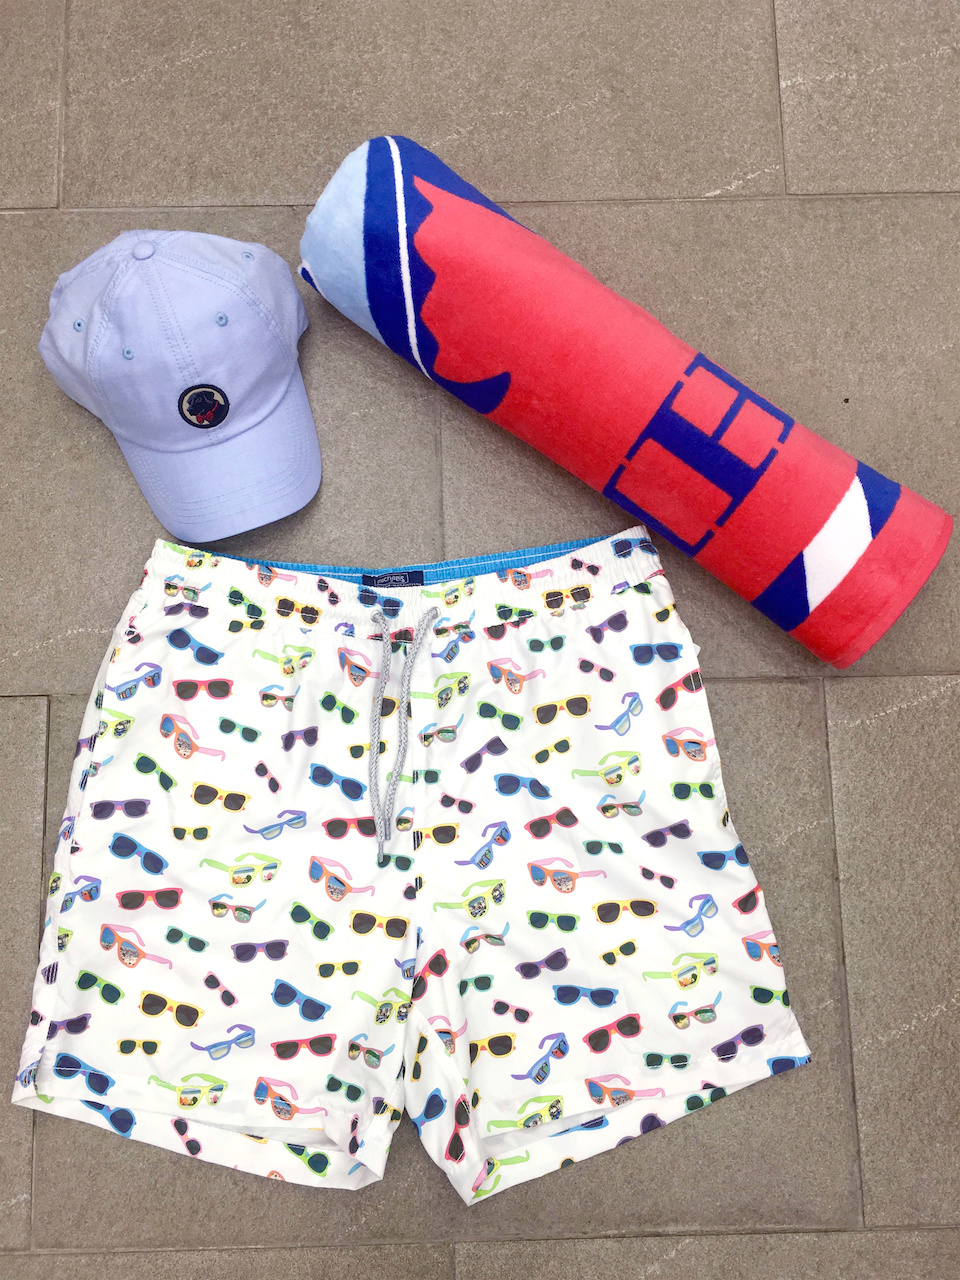 From Remon's: Michael's sunglassesprint bathing suit,$98.50; Southern Tide towel, $49.50; Southern Proper hat, $28